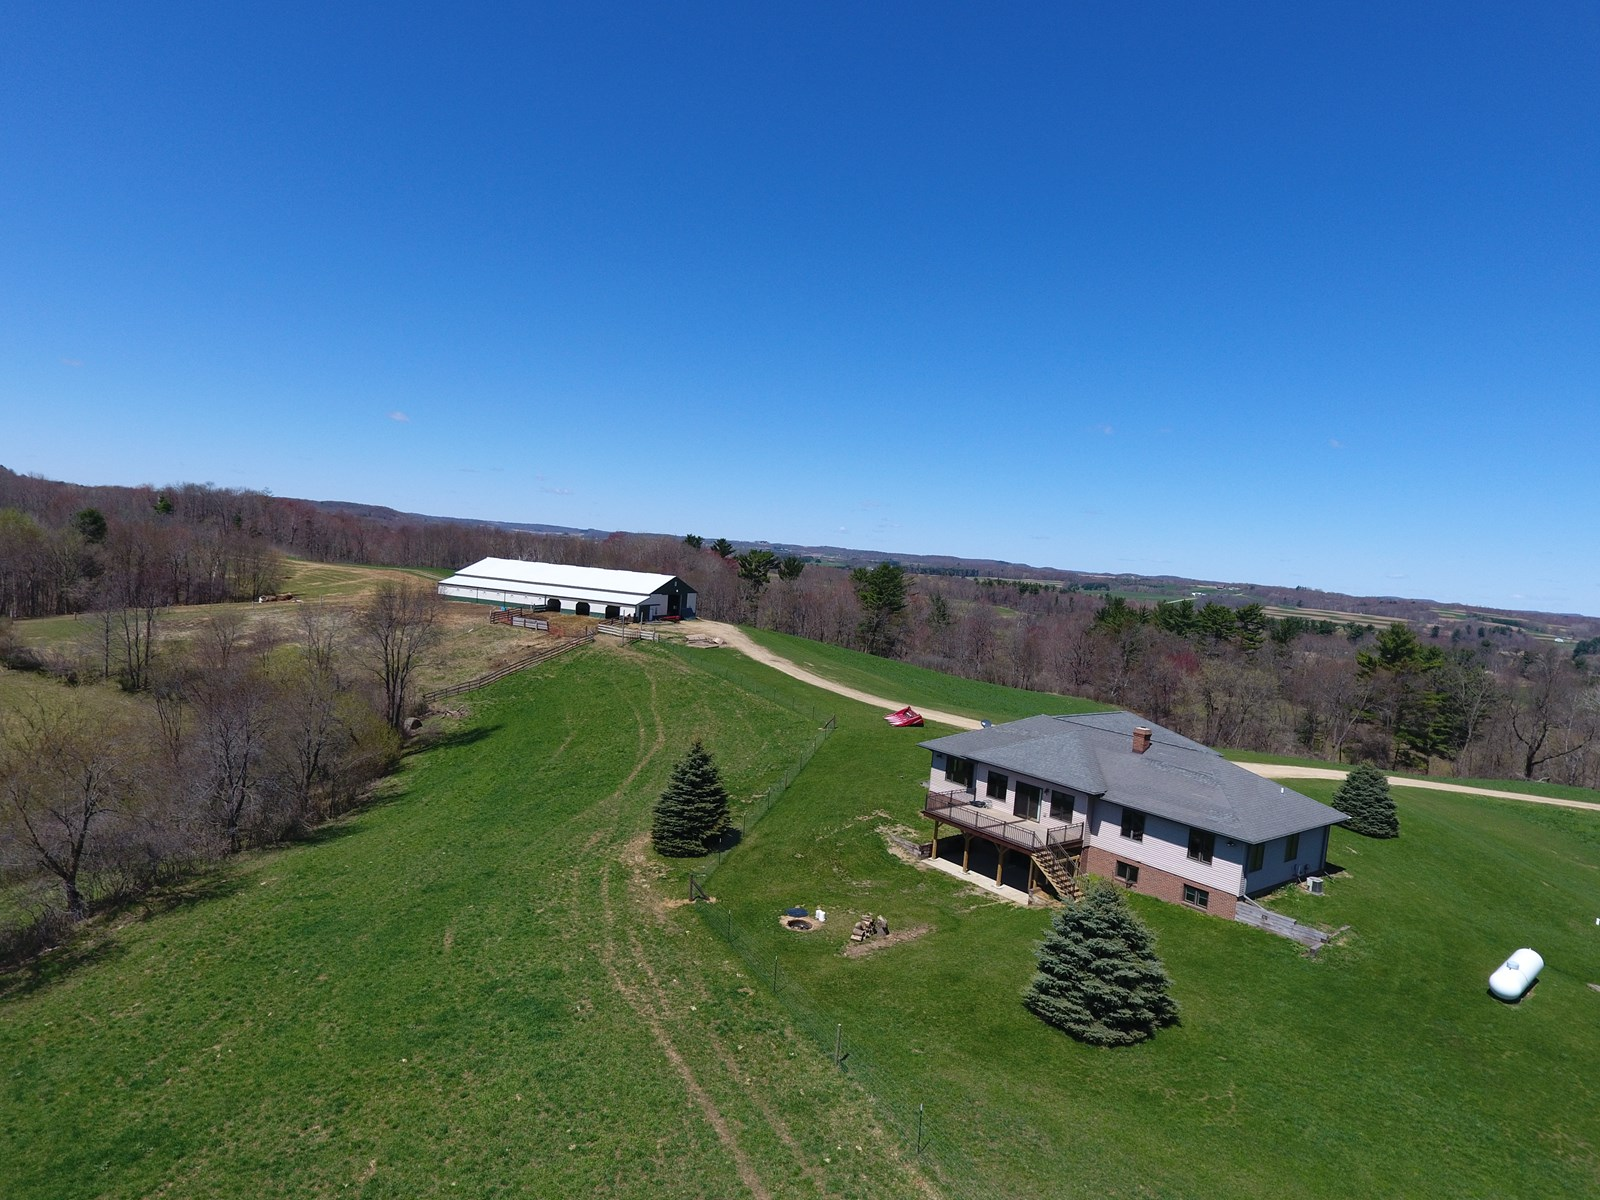 185.75 Acres Country Home, Hobby Farm, Horse Property